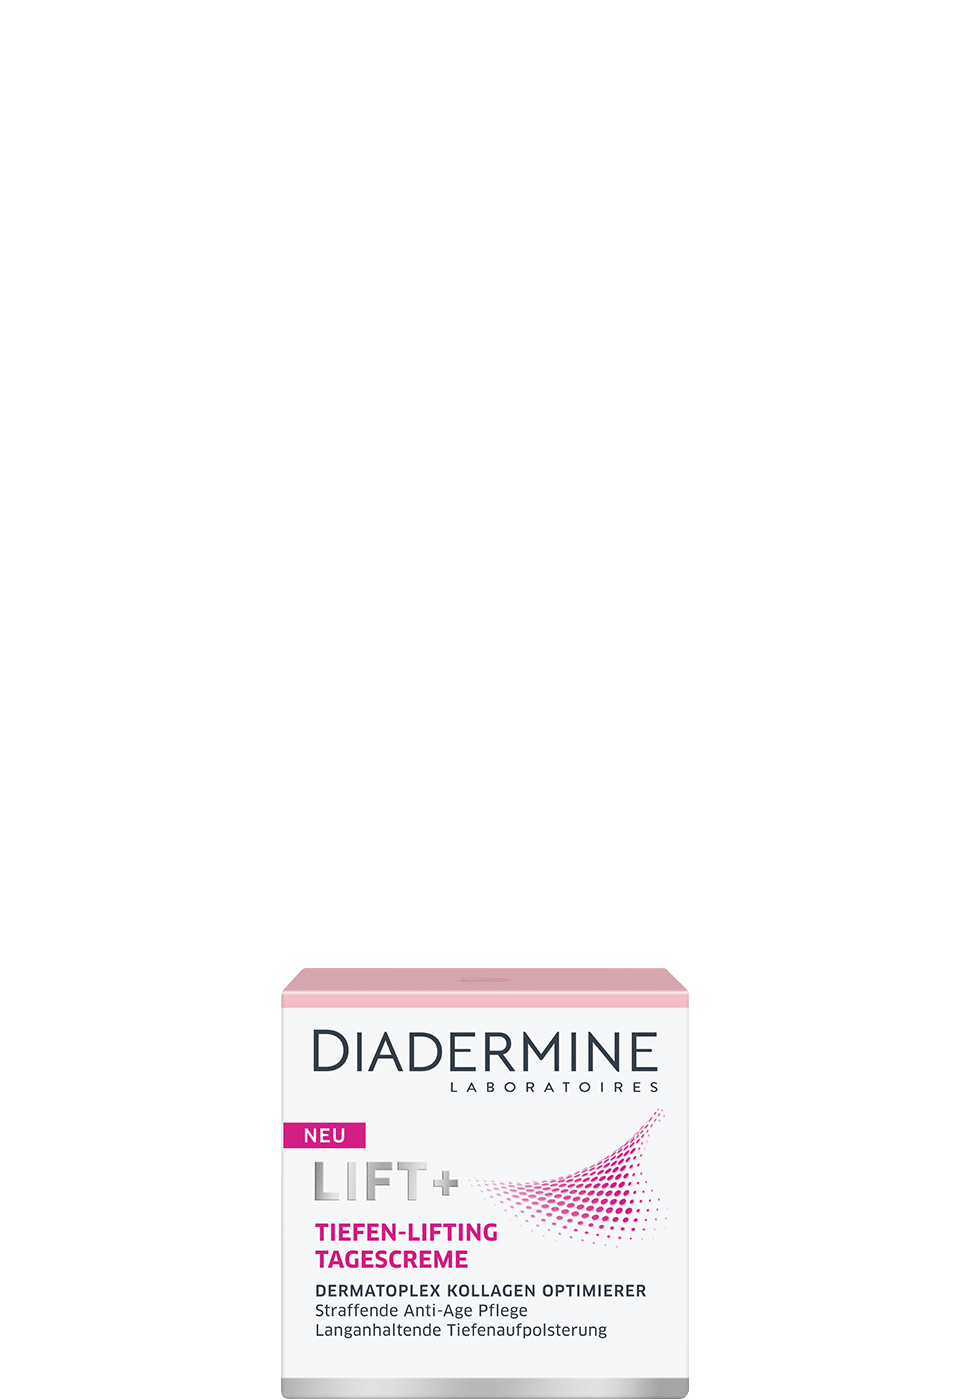 diadermine_at_lift_plus_tiefen_lifting_tagescreme_970x1400